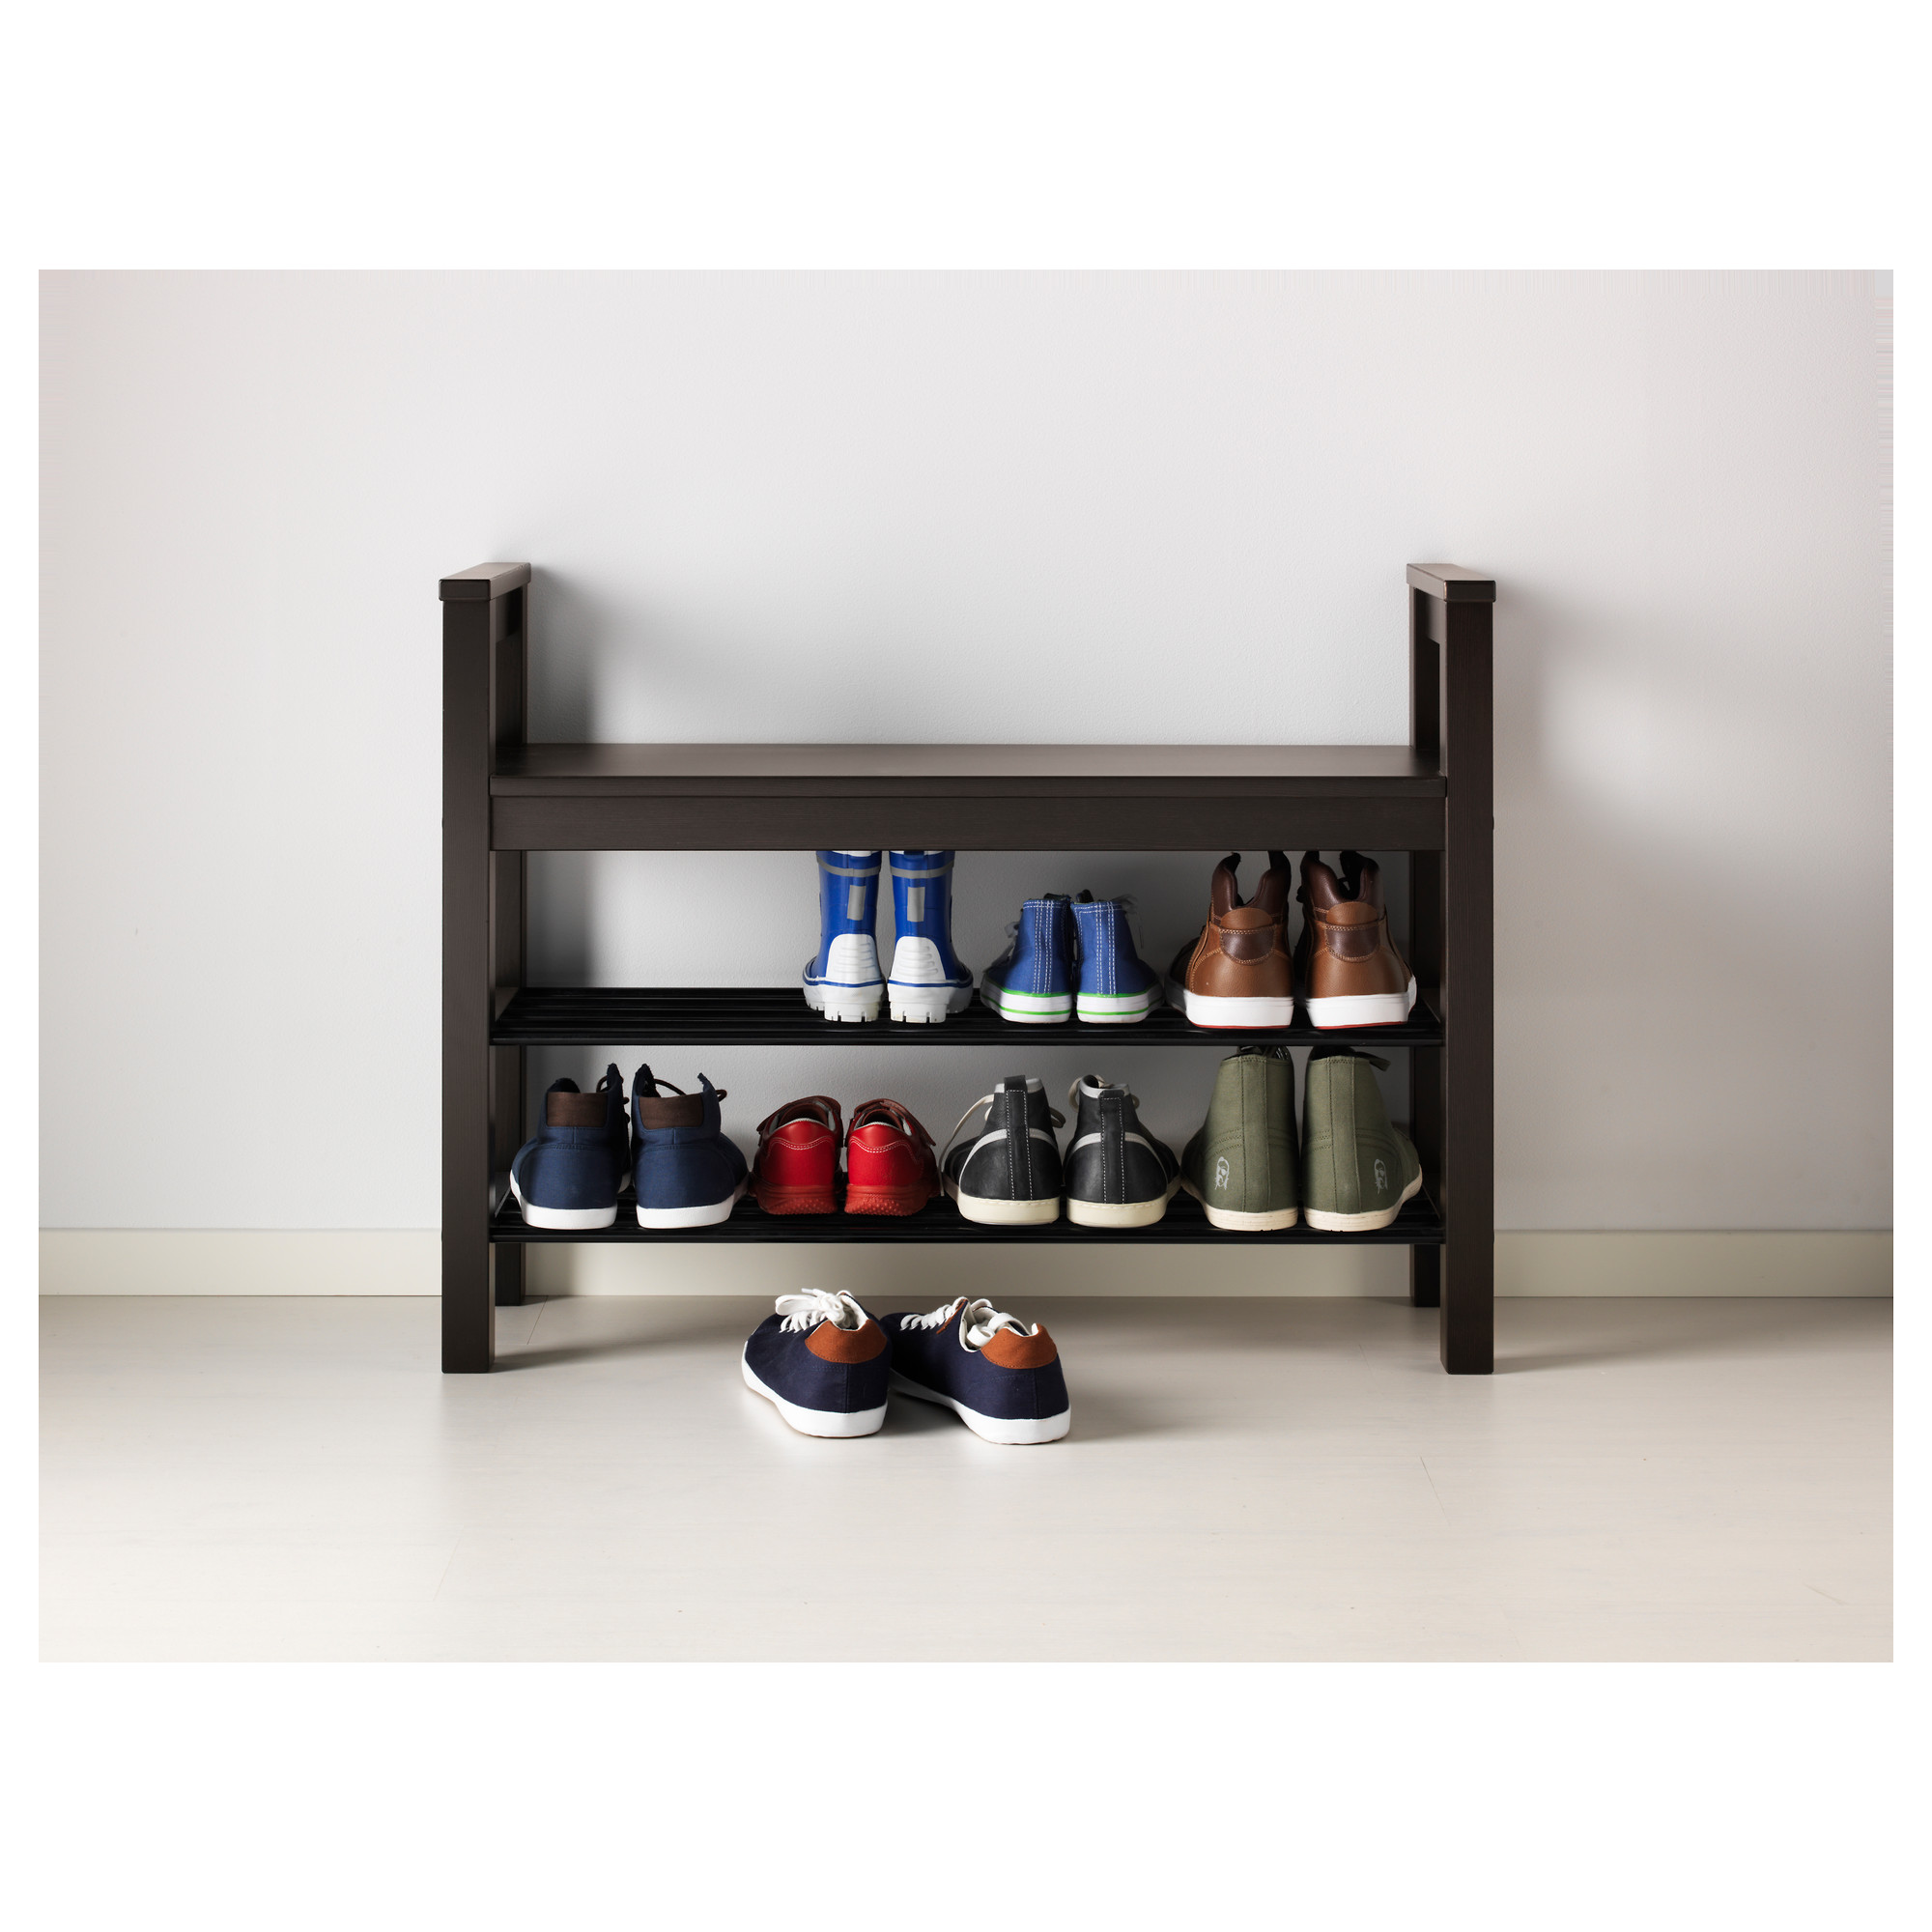 Design Ikea Shoe Storage hemnes bench with shoe storage black brown ikea